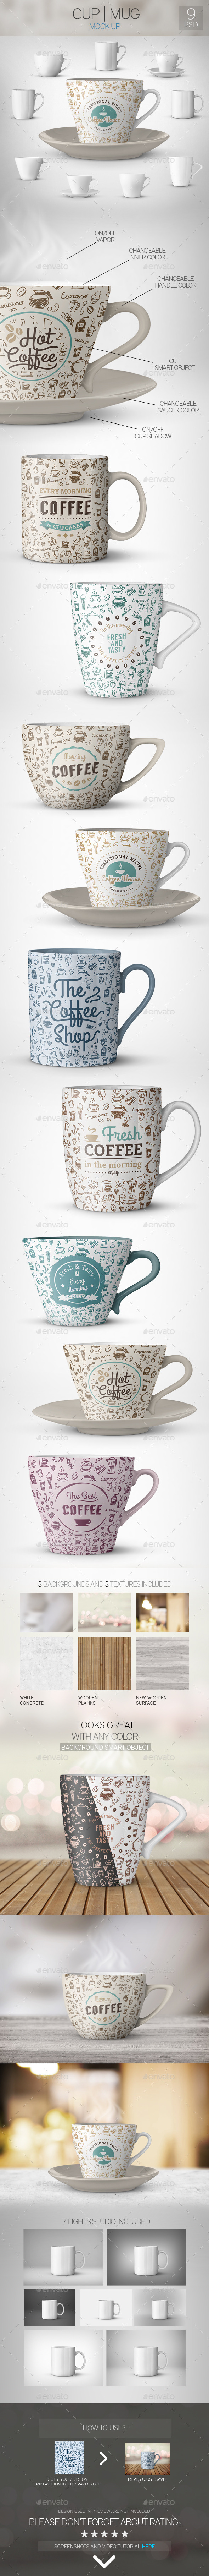 GraphicRiver Cup Mug Mock-Up 10996648